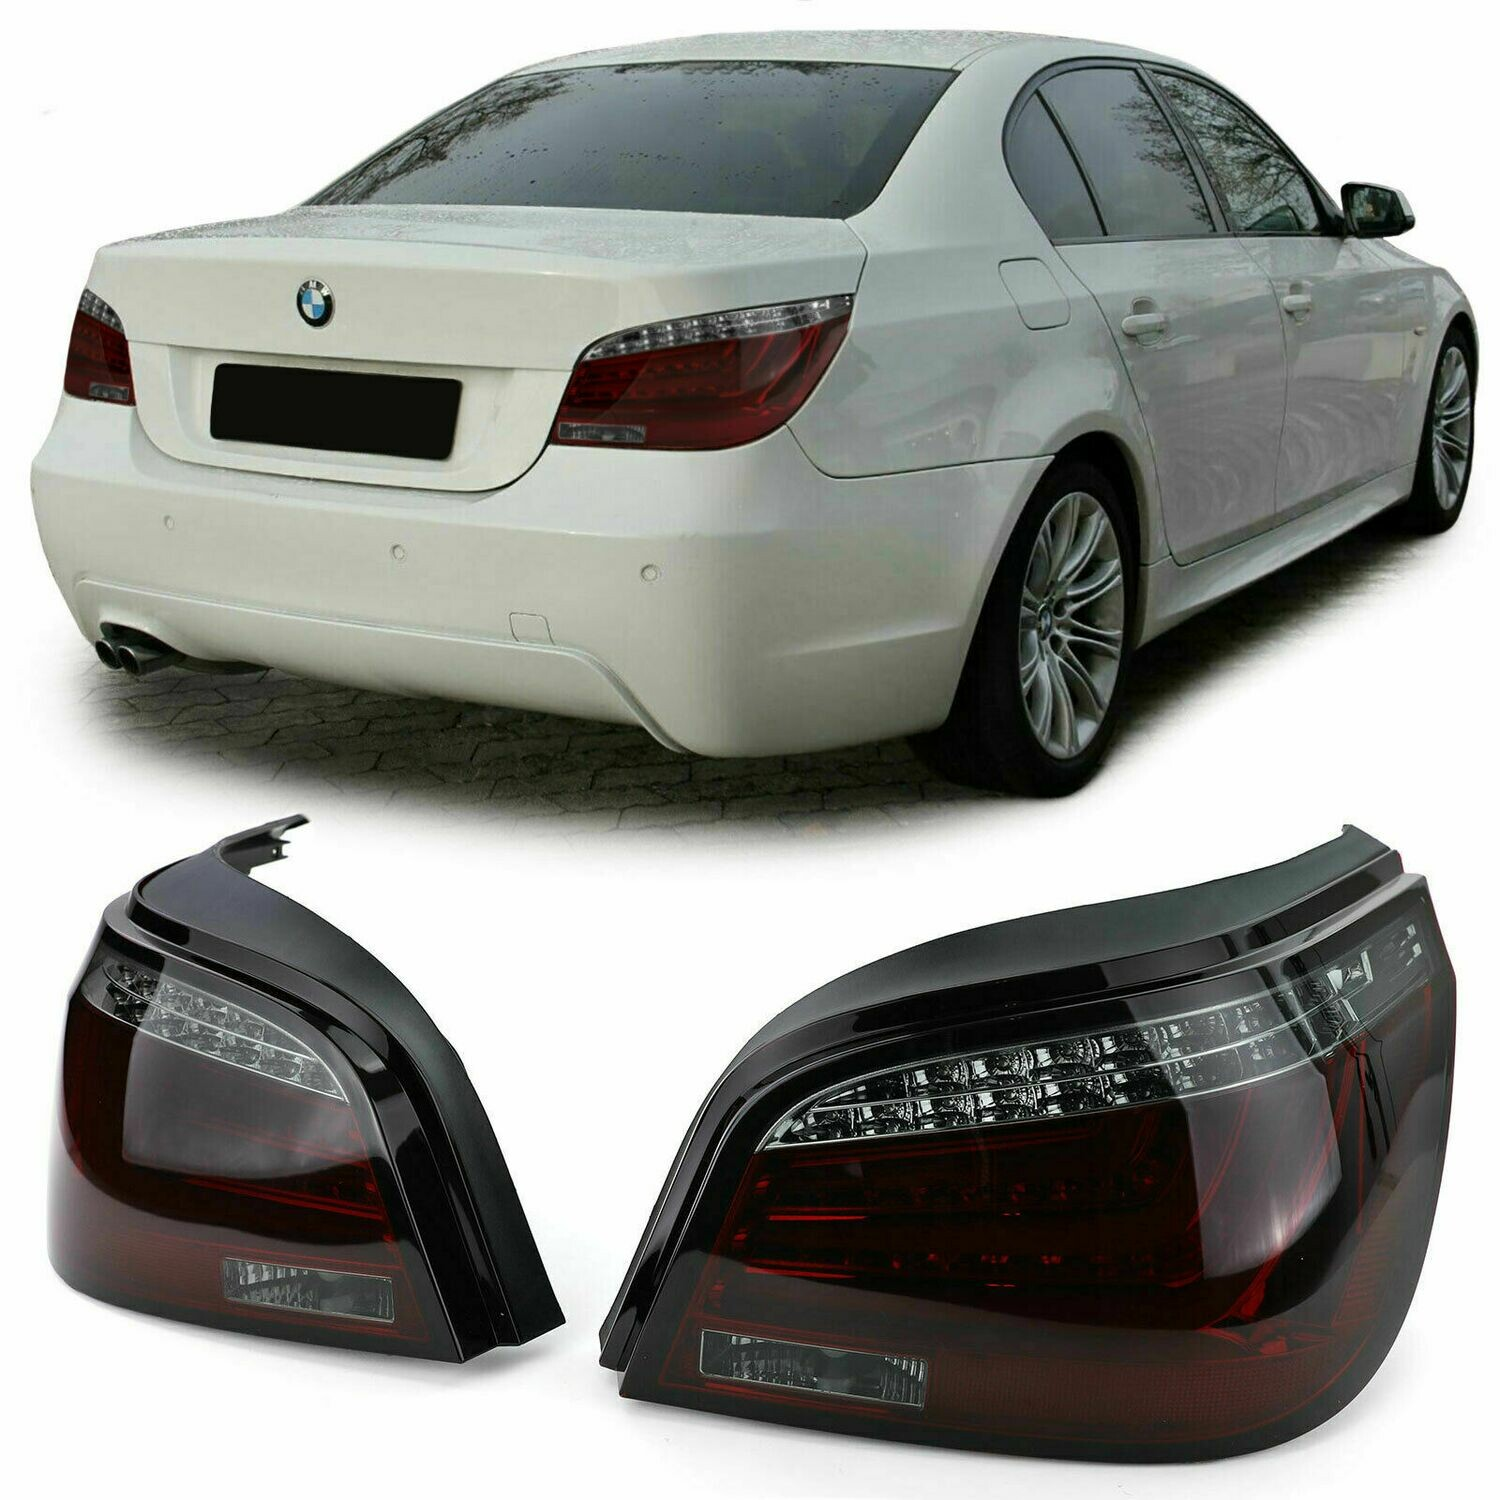 Rear LED BAR Lights RED SMOKE for BMW E60 07-10 Series 5 SALOON